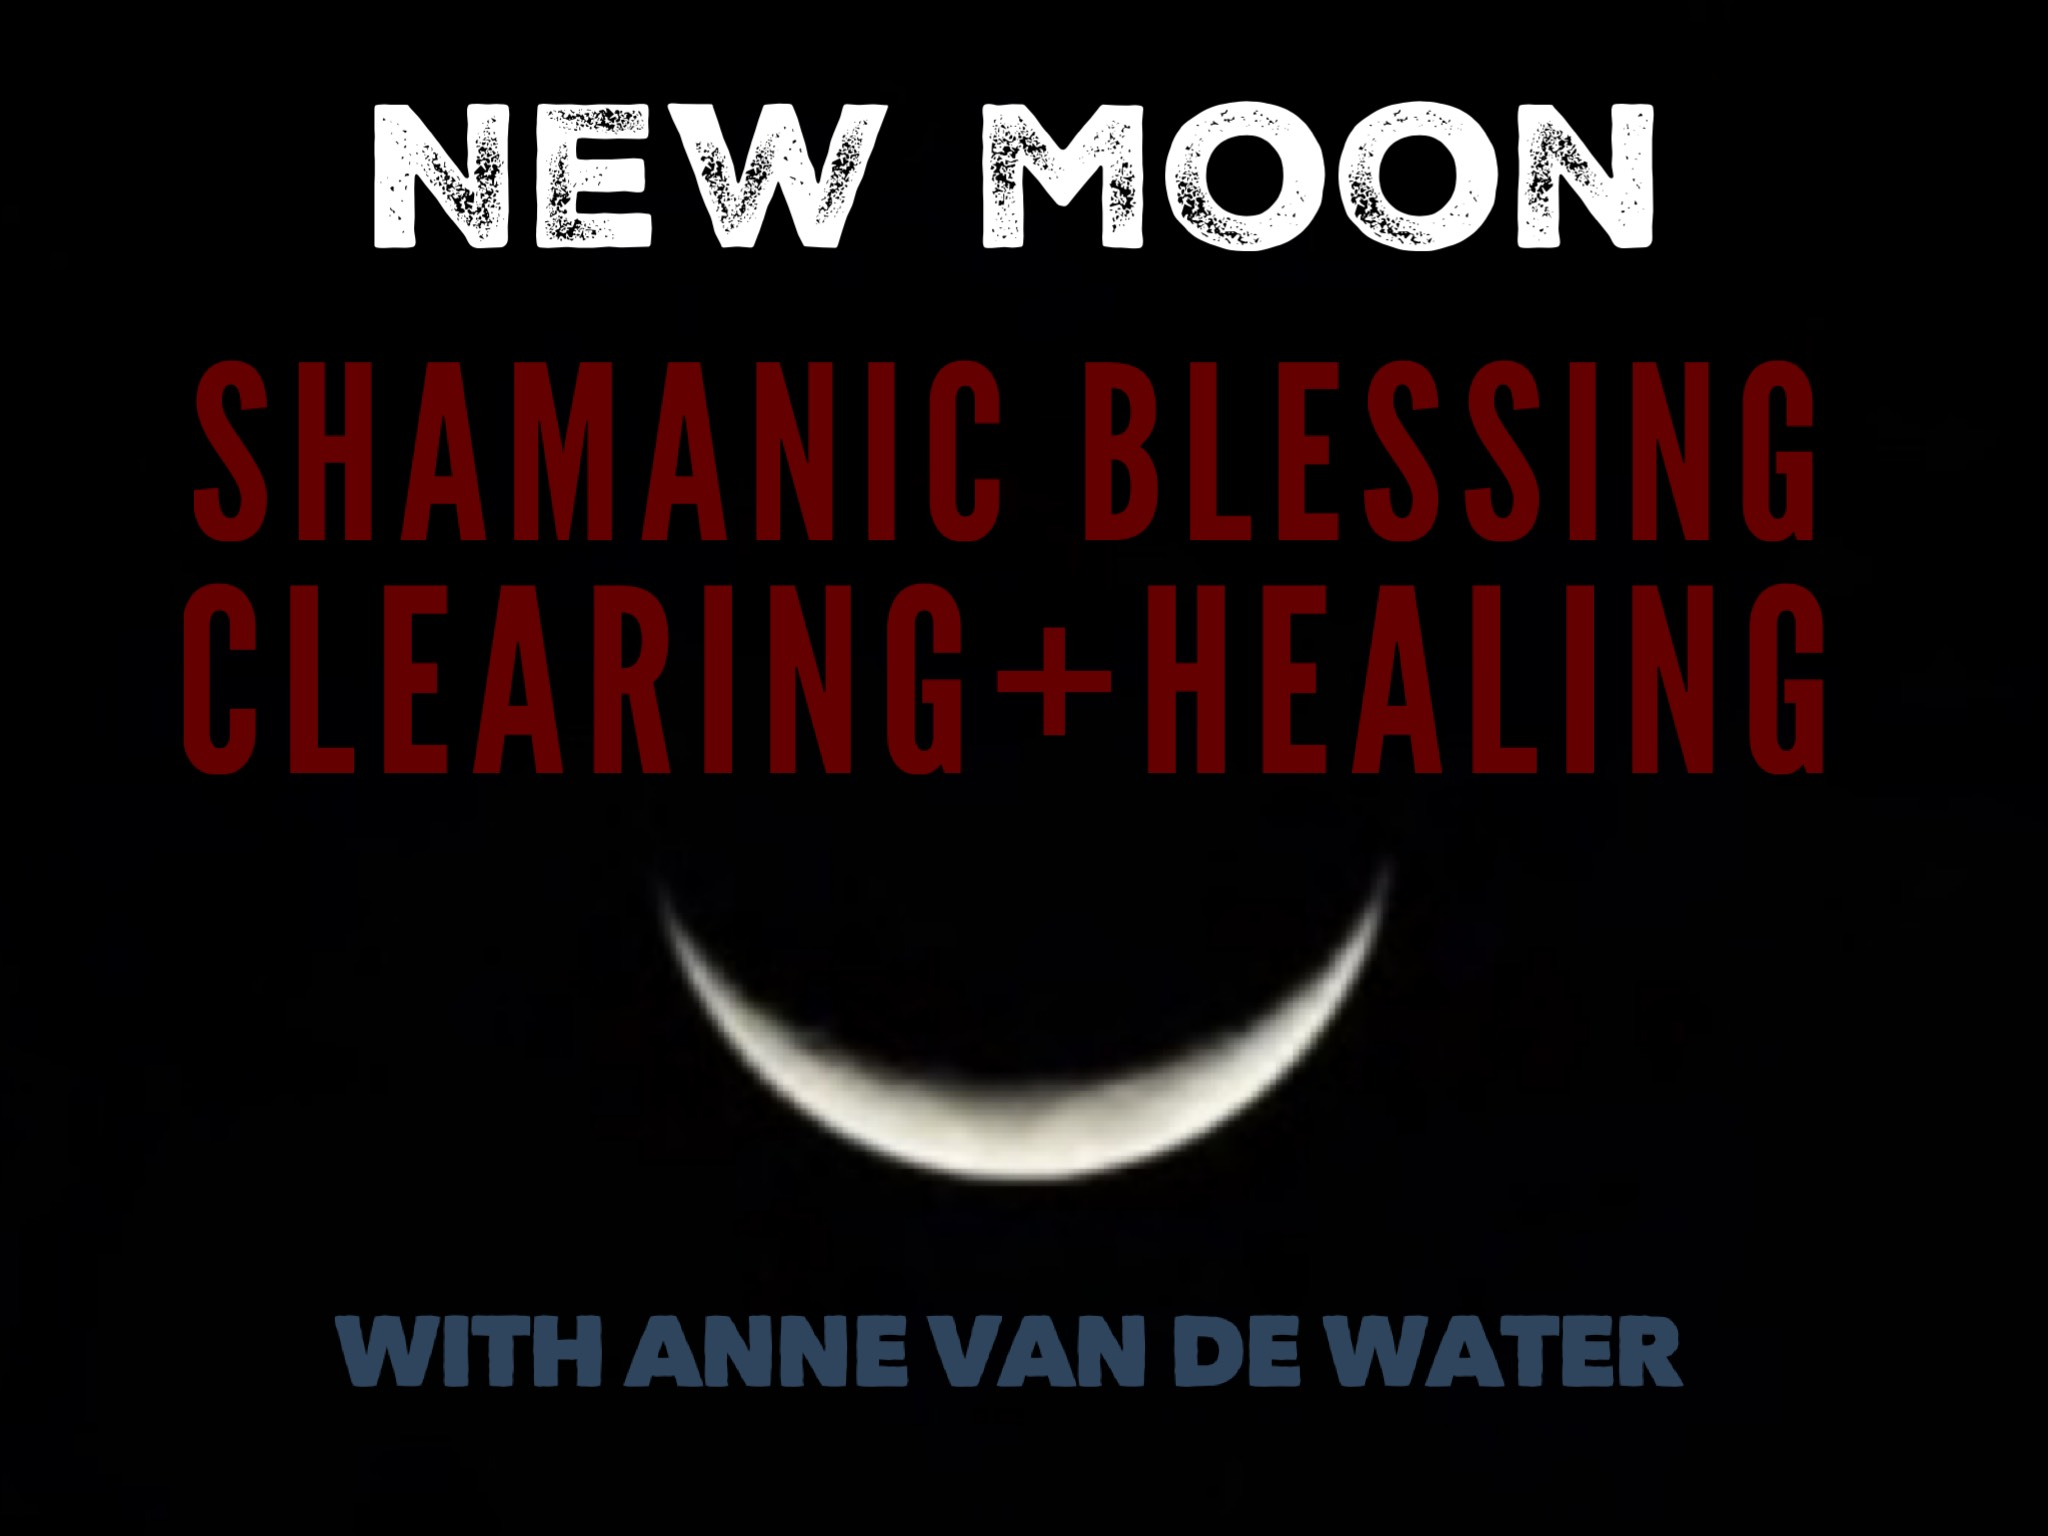 NEW MOON SHAMANIC BLESSING+CLEARING+HEALING